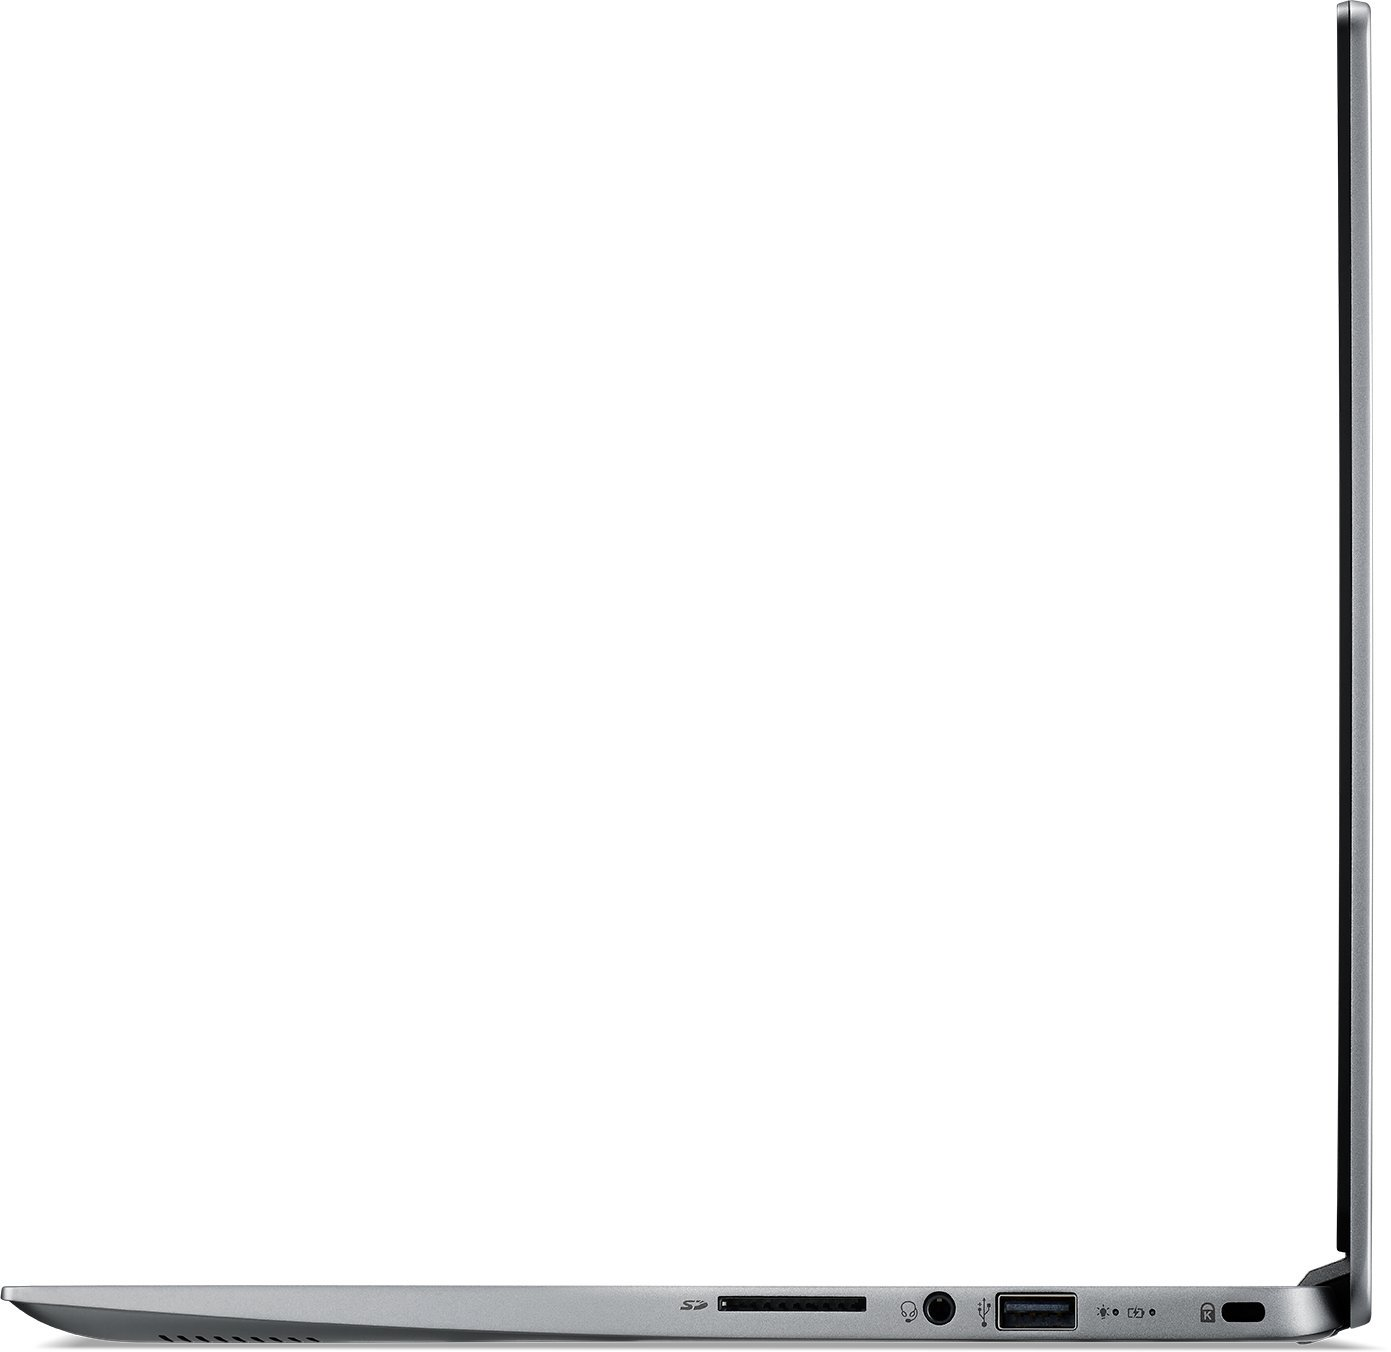 Acer Swift 1 SF114-32-P6M2